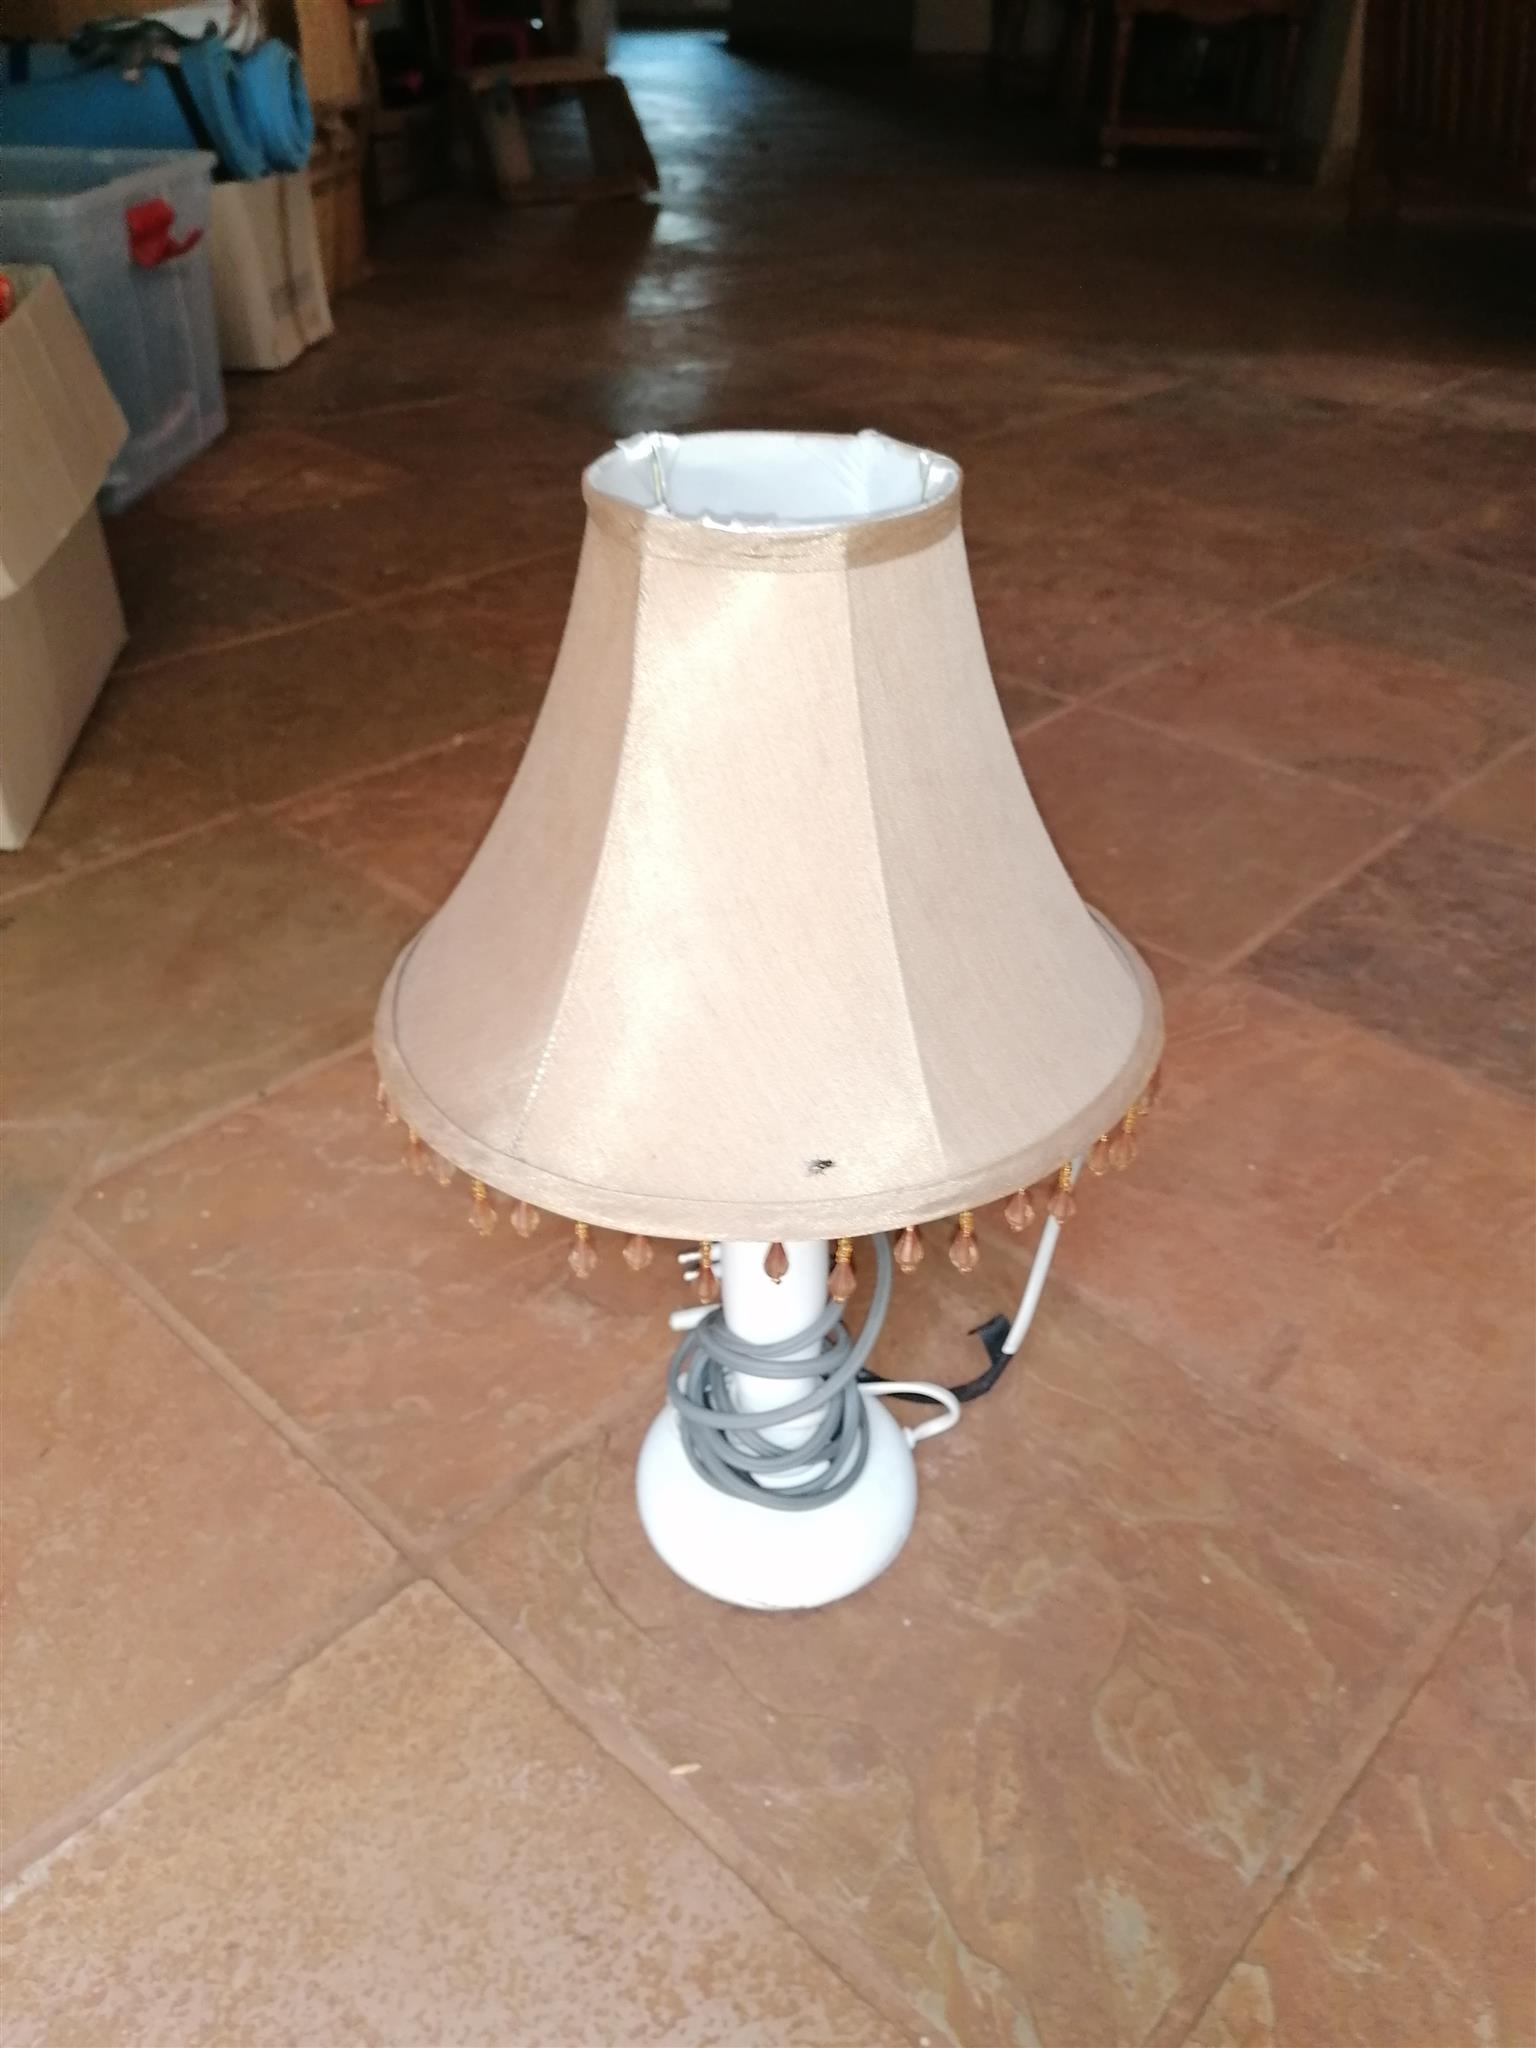 Selling 3 bed side lamps